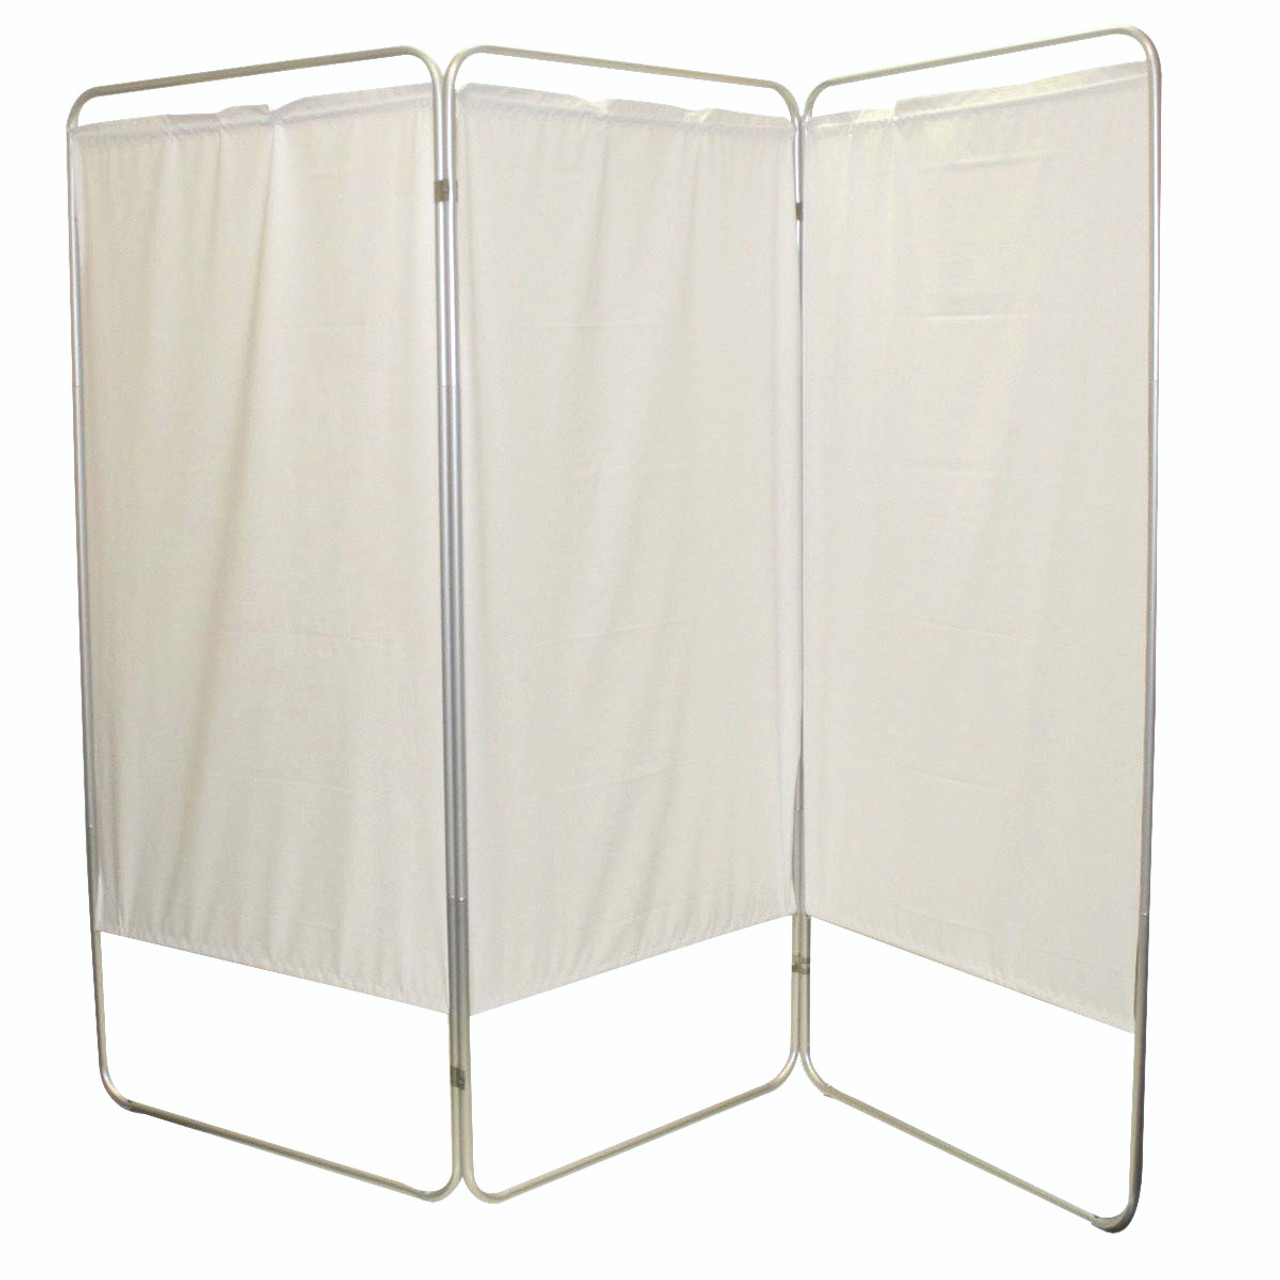 """King size 3-Panel Privacy Screen - Yellow 4 mil vinyl, 85"""" W x 68"""" H extended, 31"""" W x 68"""" H x2.5"""" D folded"""